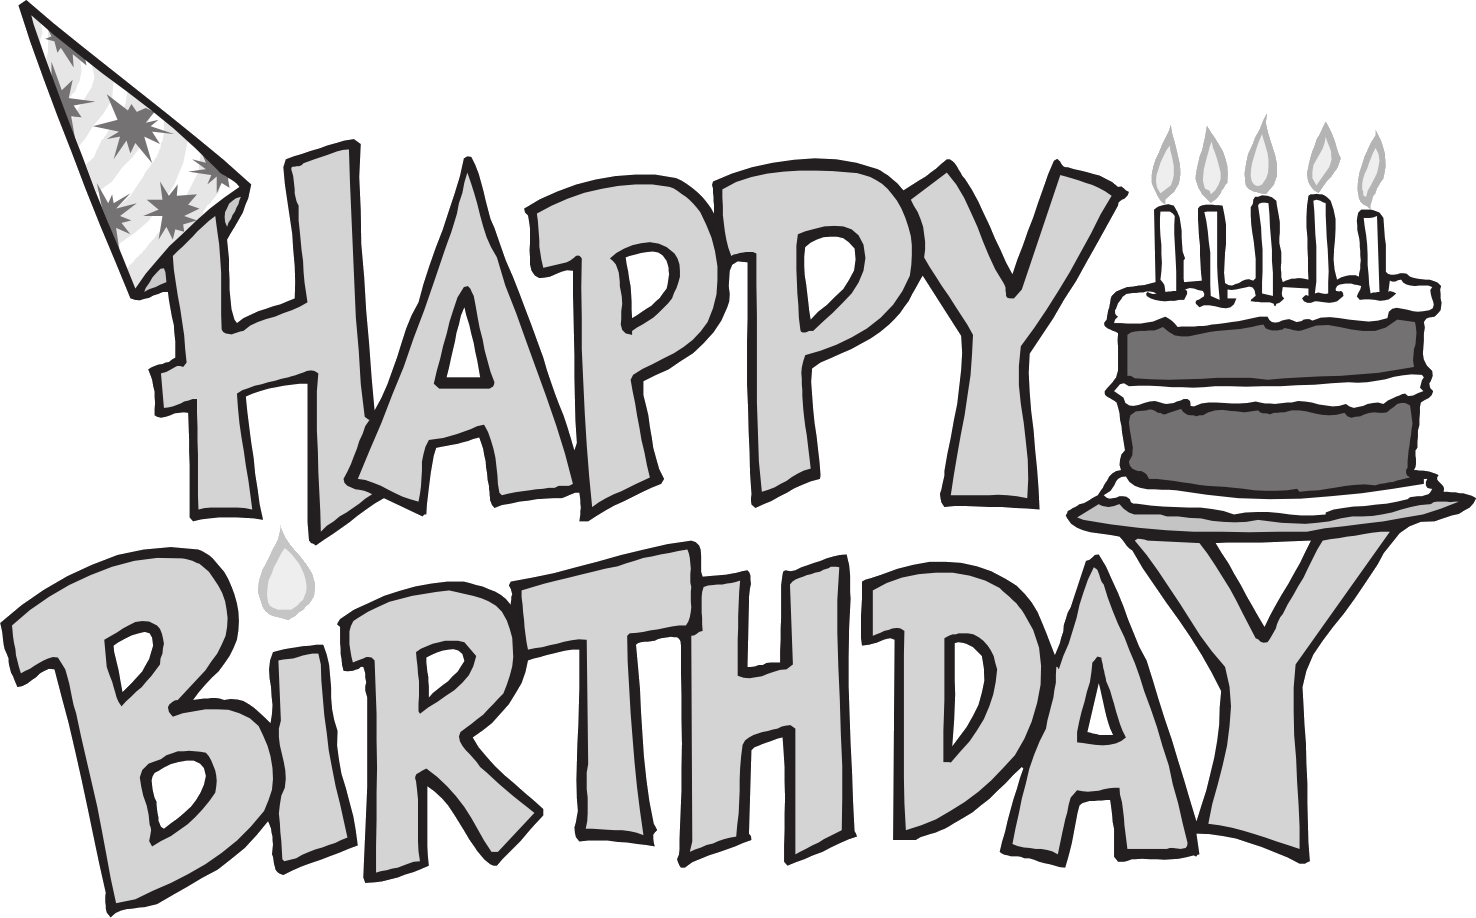 Birthday Clip Art Black And W - Birthday Clipart Black And White